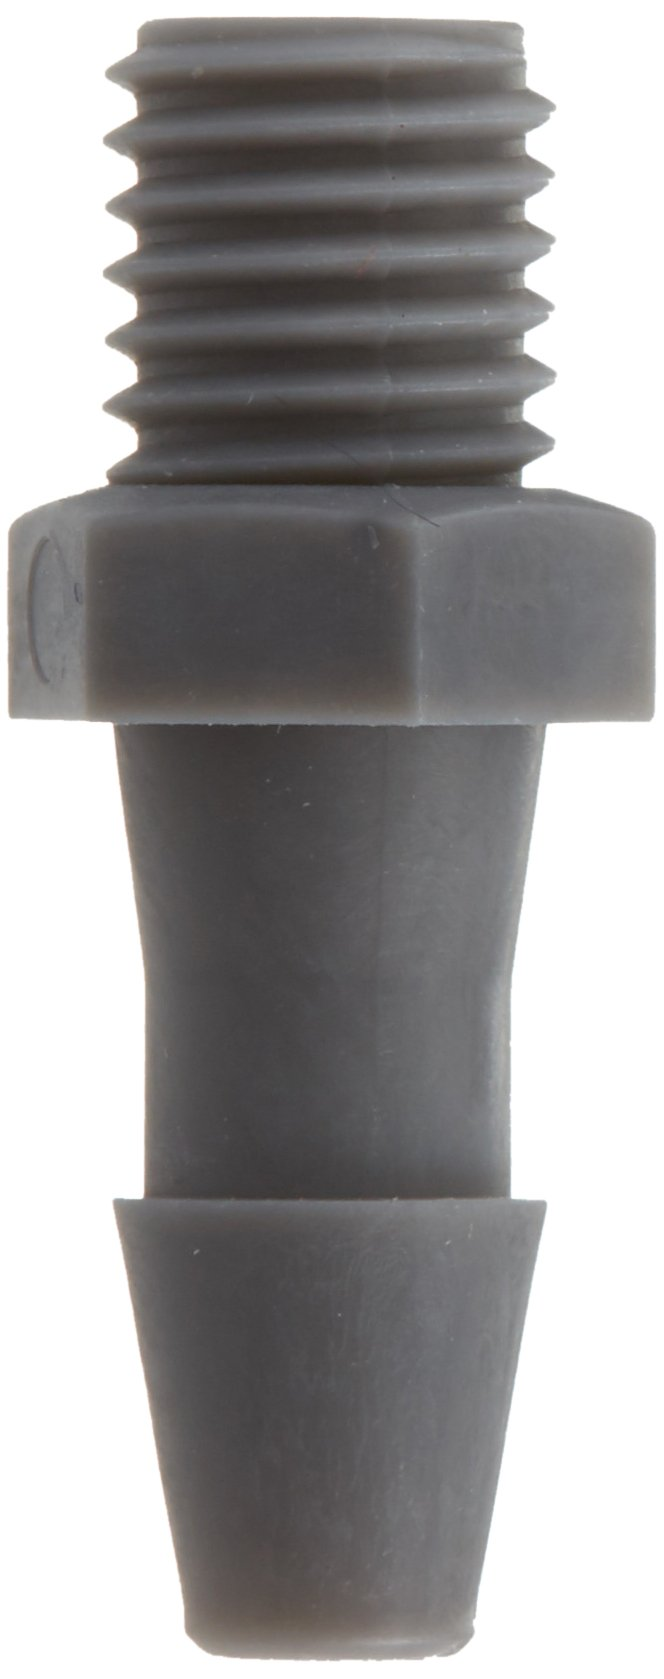 Eldon James A1428-2.5-200PVDF Gray Kynar Adapter Fitting, 1/4-28 UNF to 5/32'' Hose Barb (Pack of 10) by Eldon James